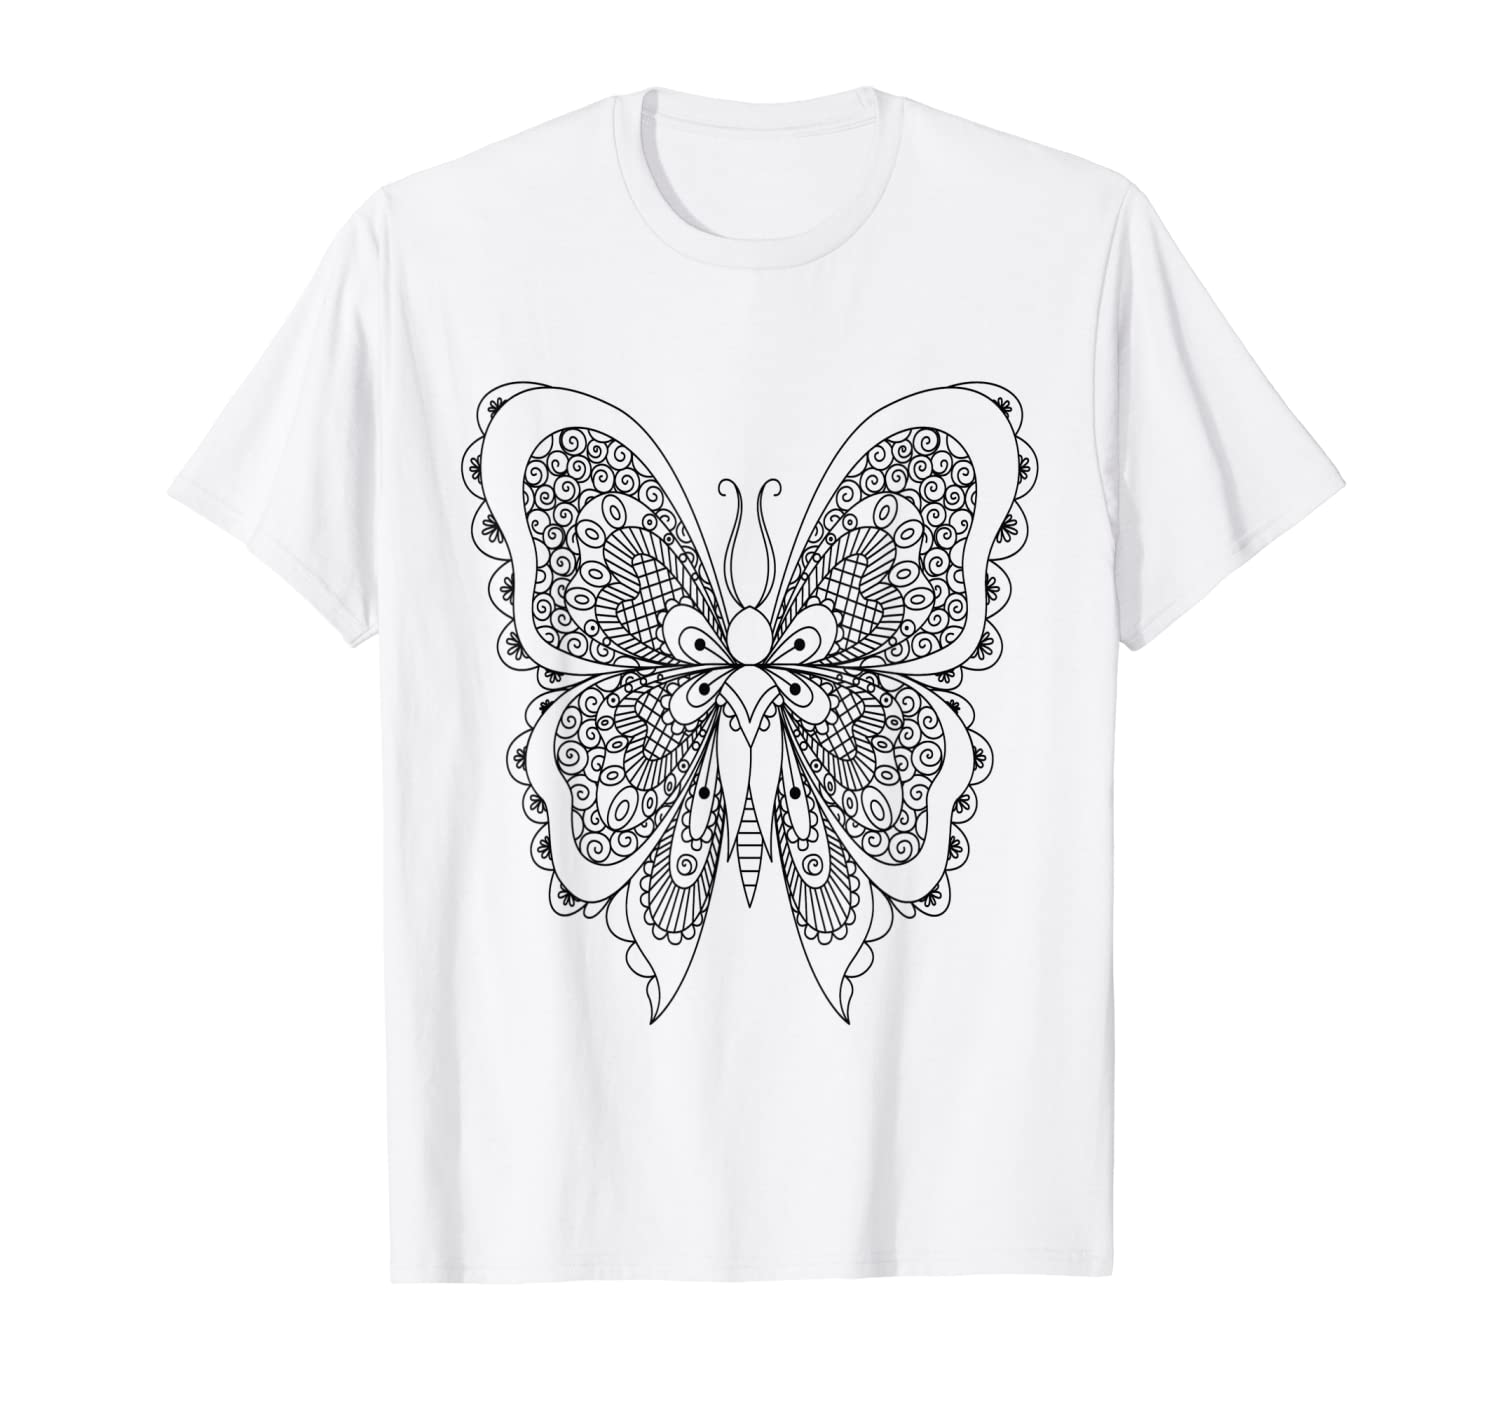 Amazon.com: Butterfly Coloring Book Style DIY Coloring T ...